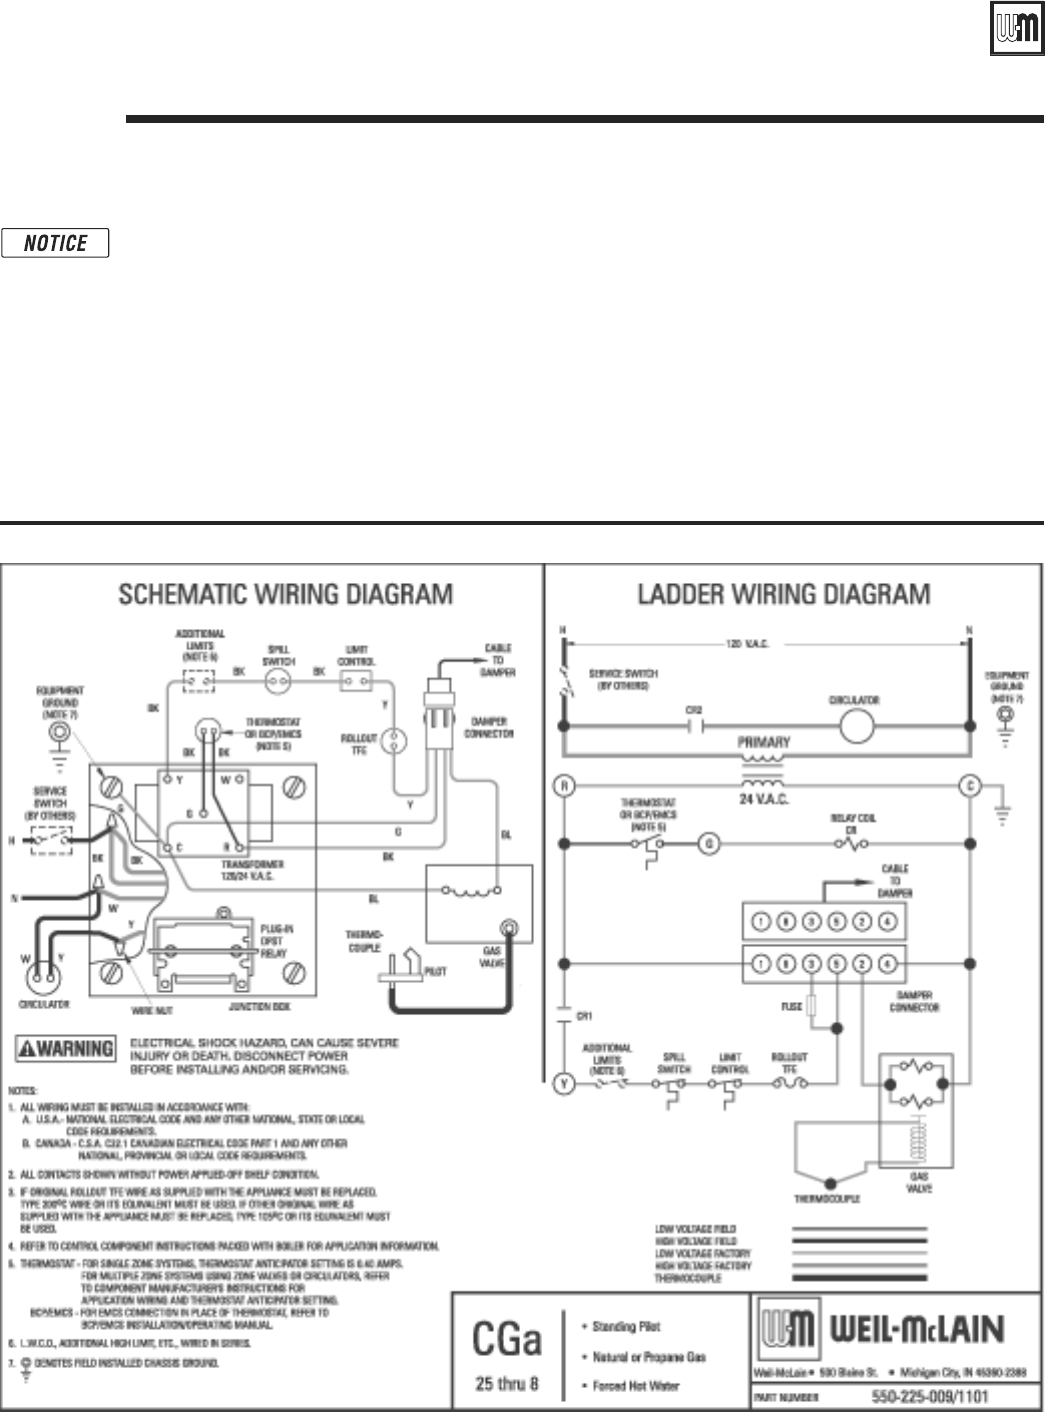 hight resolution of weil mclain wiring diagram wiring diagrams wni weil mclain steam boiler wiring diagram weil mclain wiring diagram